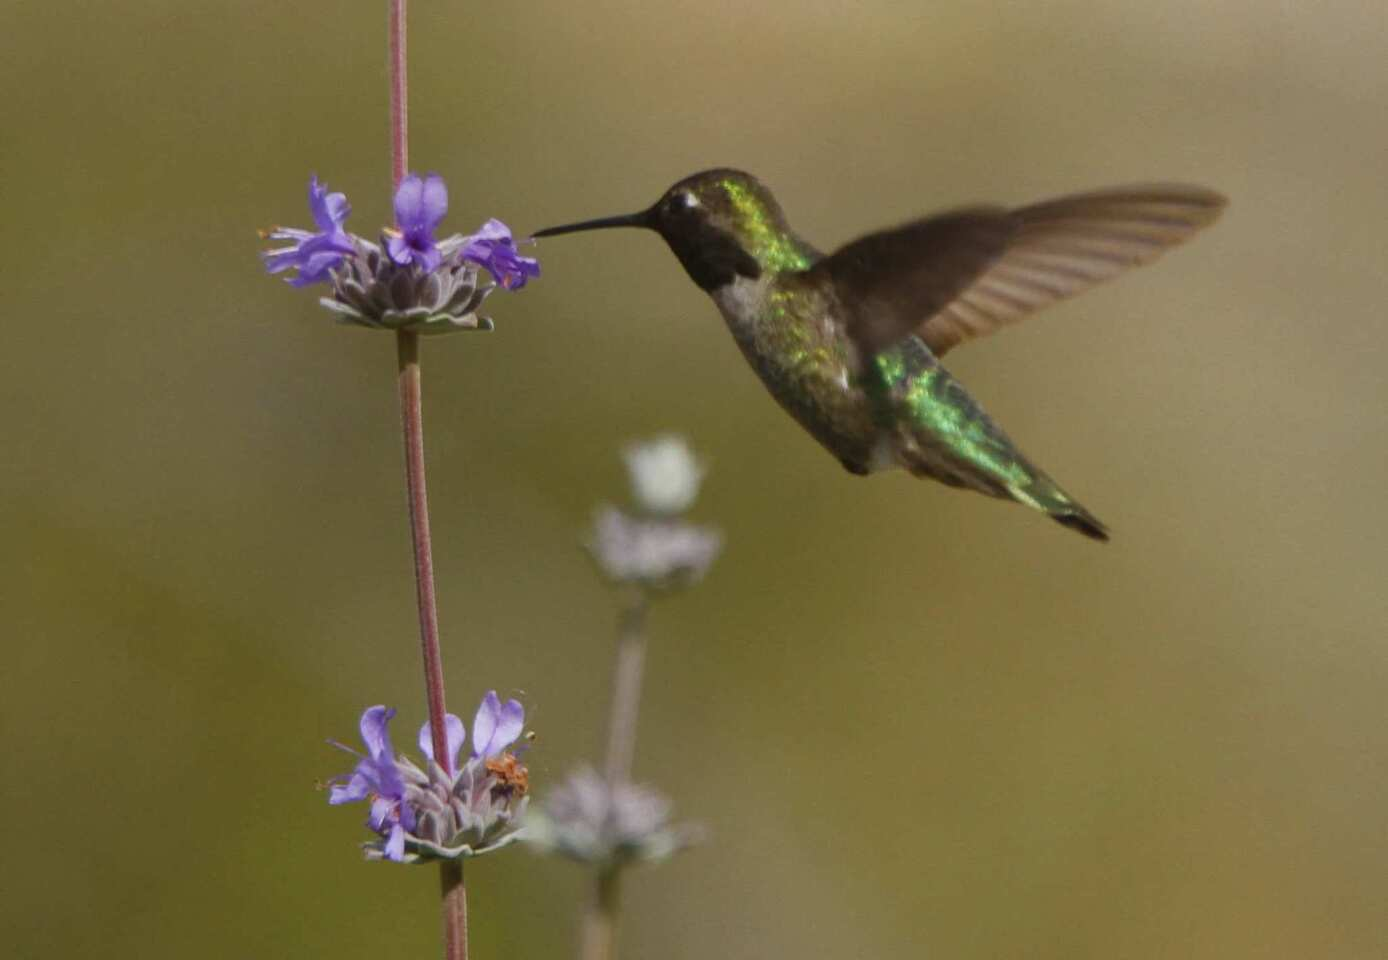 An Anna's hummingbird feeds at a sage plant in the urban garden at Leo Politi Elementary School west of downtown Los Angeles. The campus has become a sanctuary for birds, native plants and an array of insects -- much to the delight of its students.